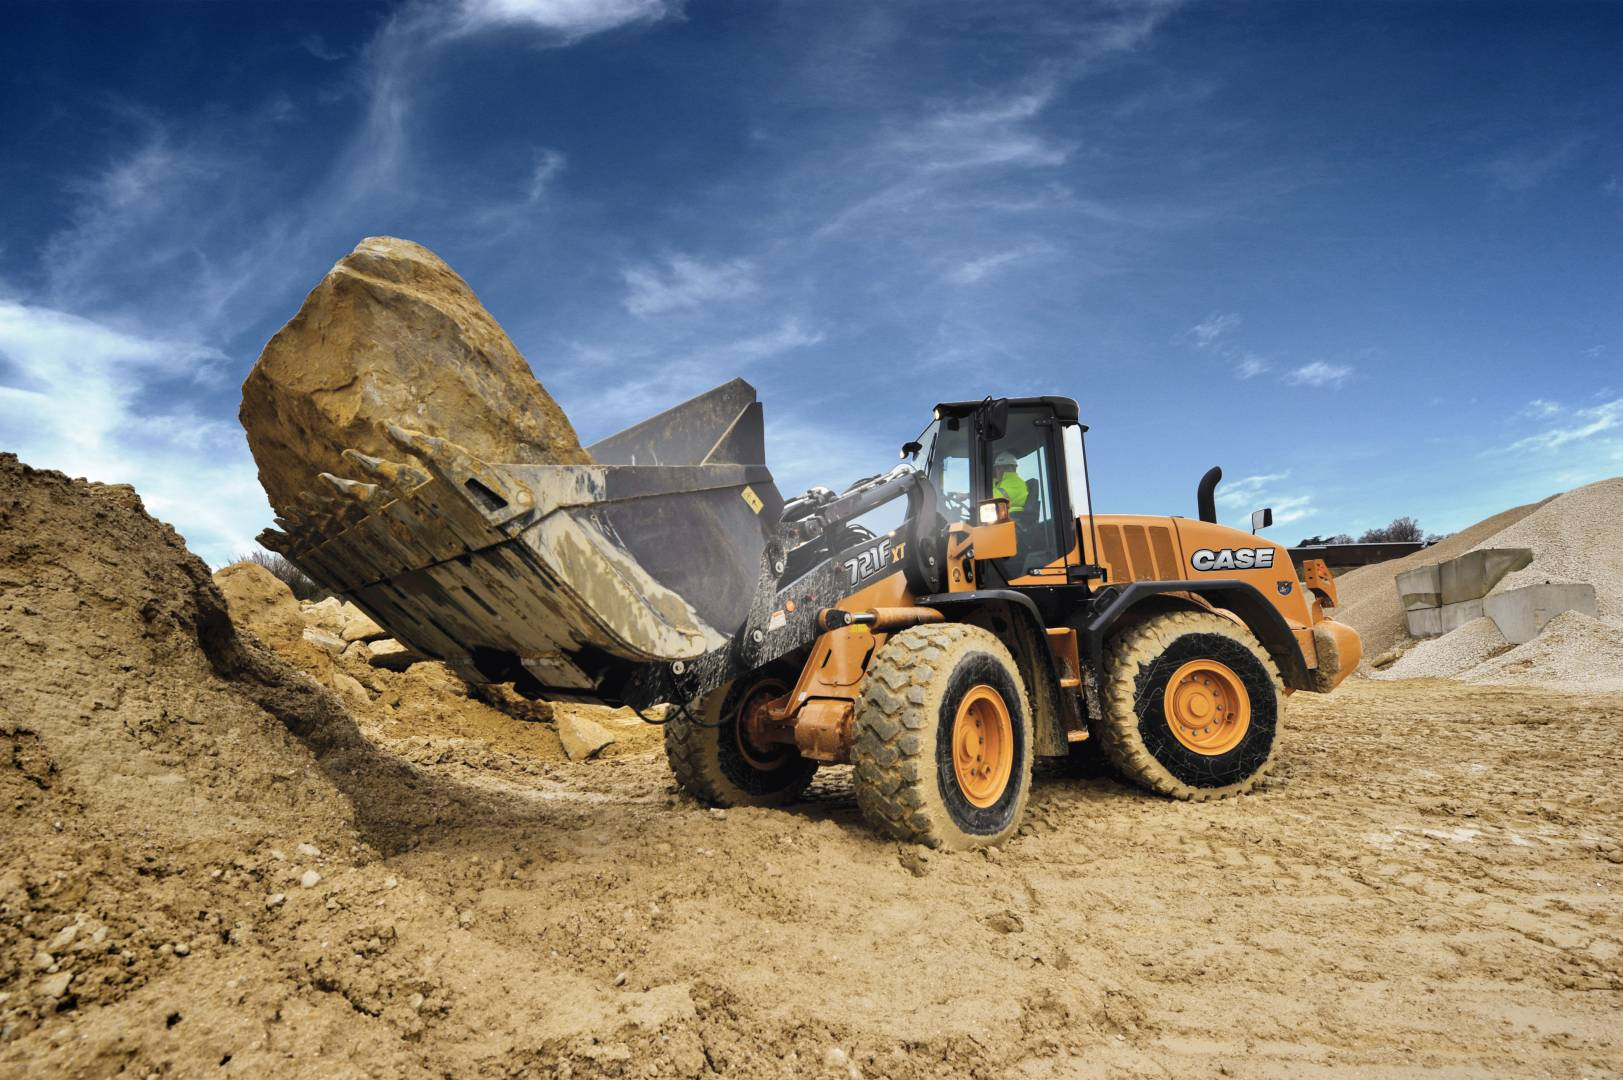 Case Construction Equipment Wheel Loader